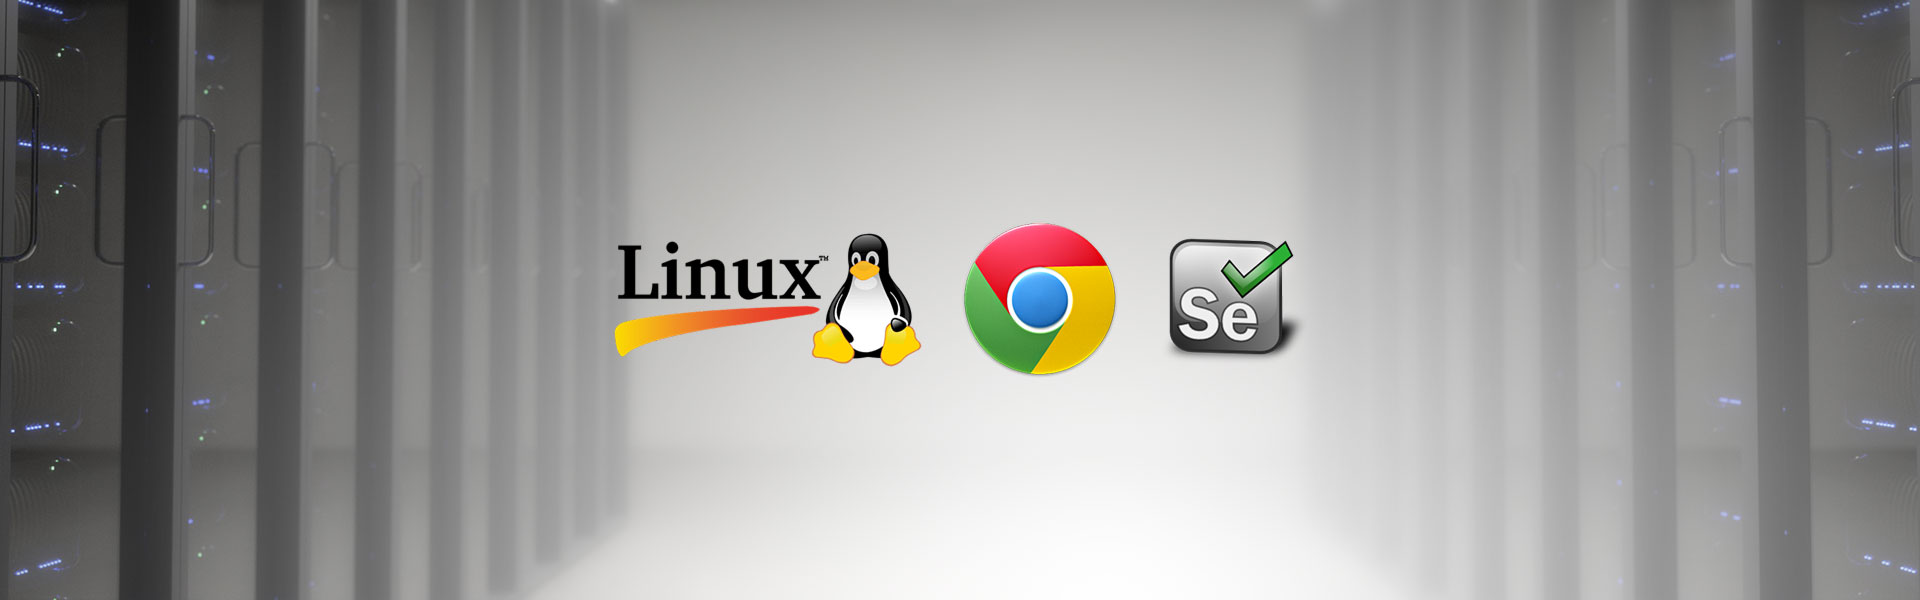 Running Chrome Headless with Selenium & Python on Linux